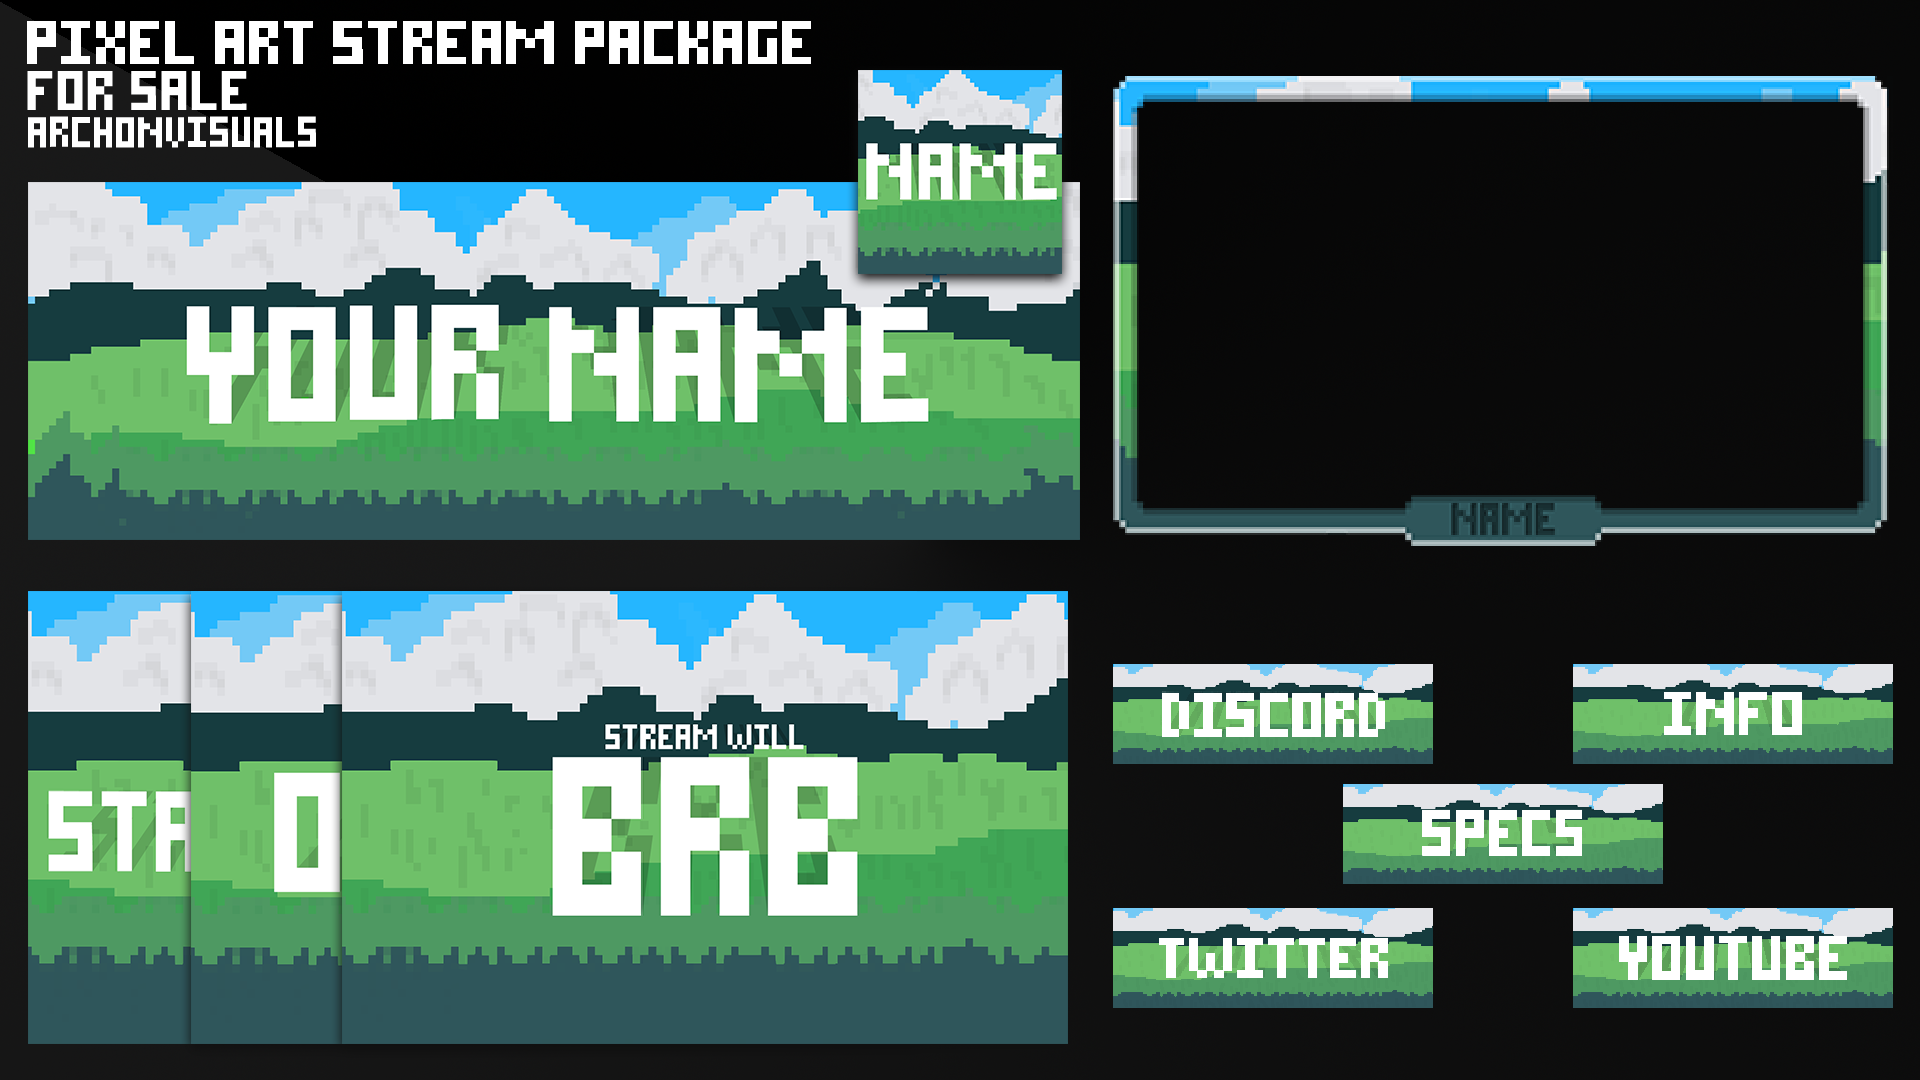 8 bit stream overlay package for sale